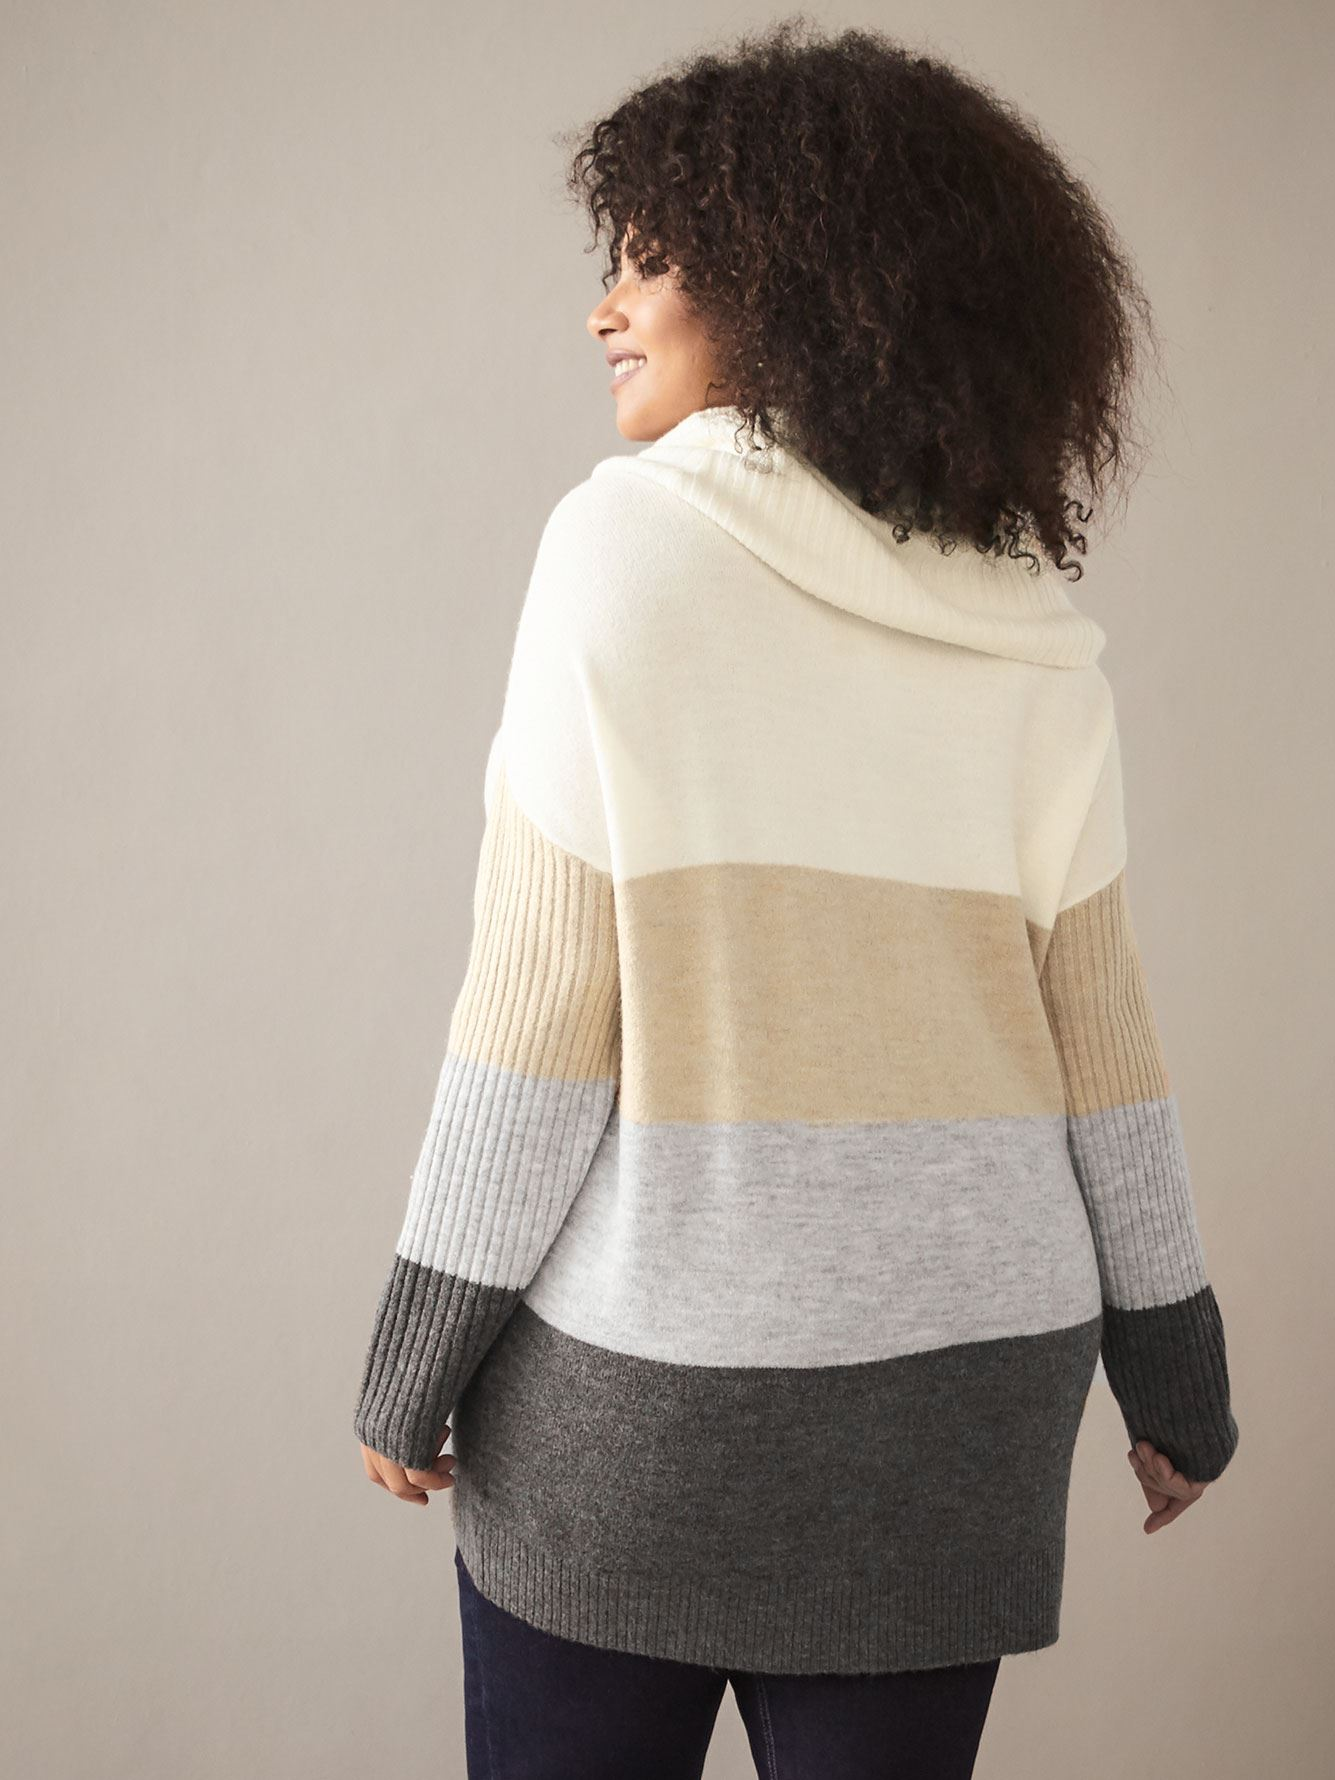 Color Block Cowl-Neck Sweater - In Every Story